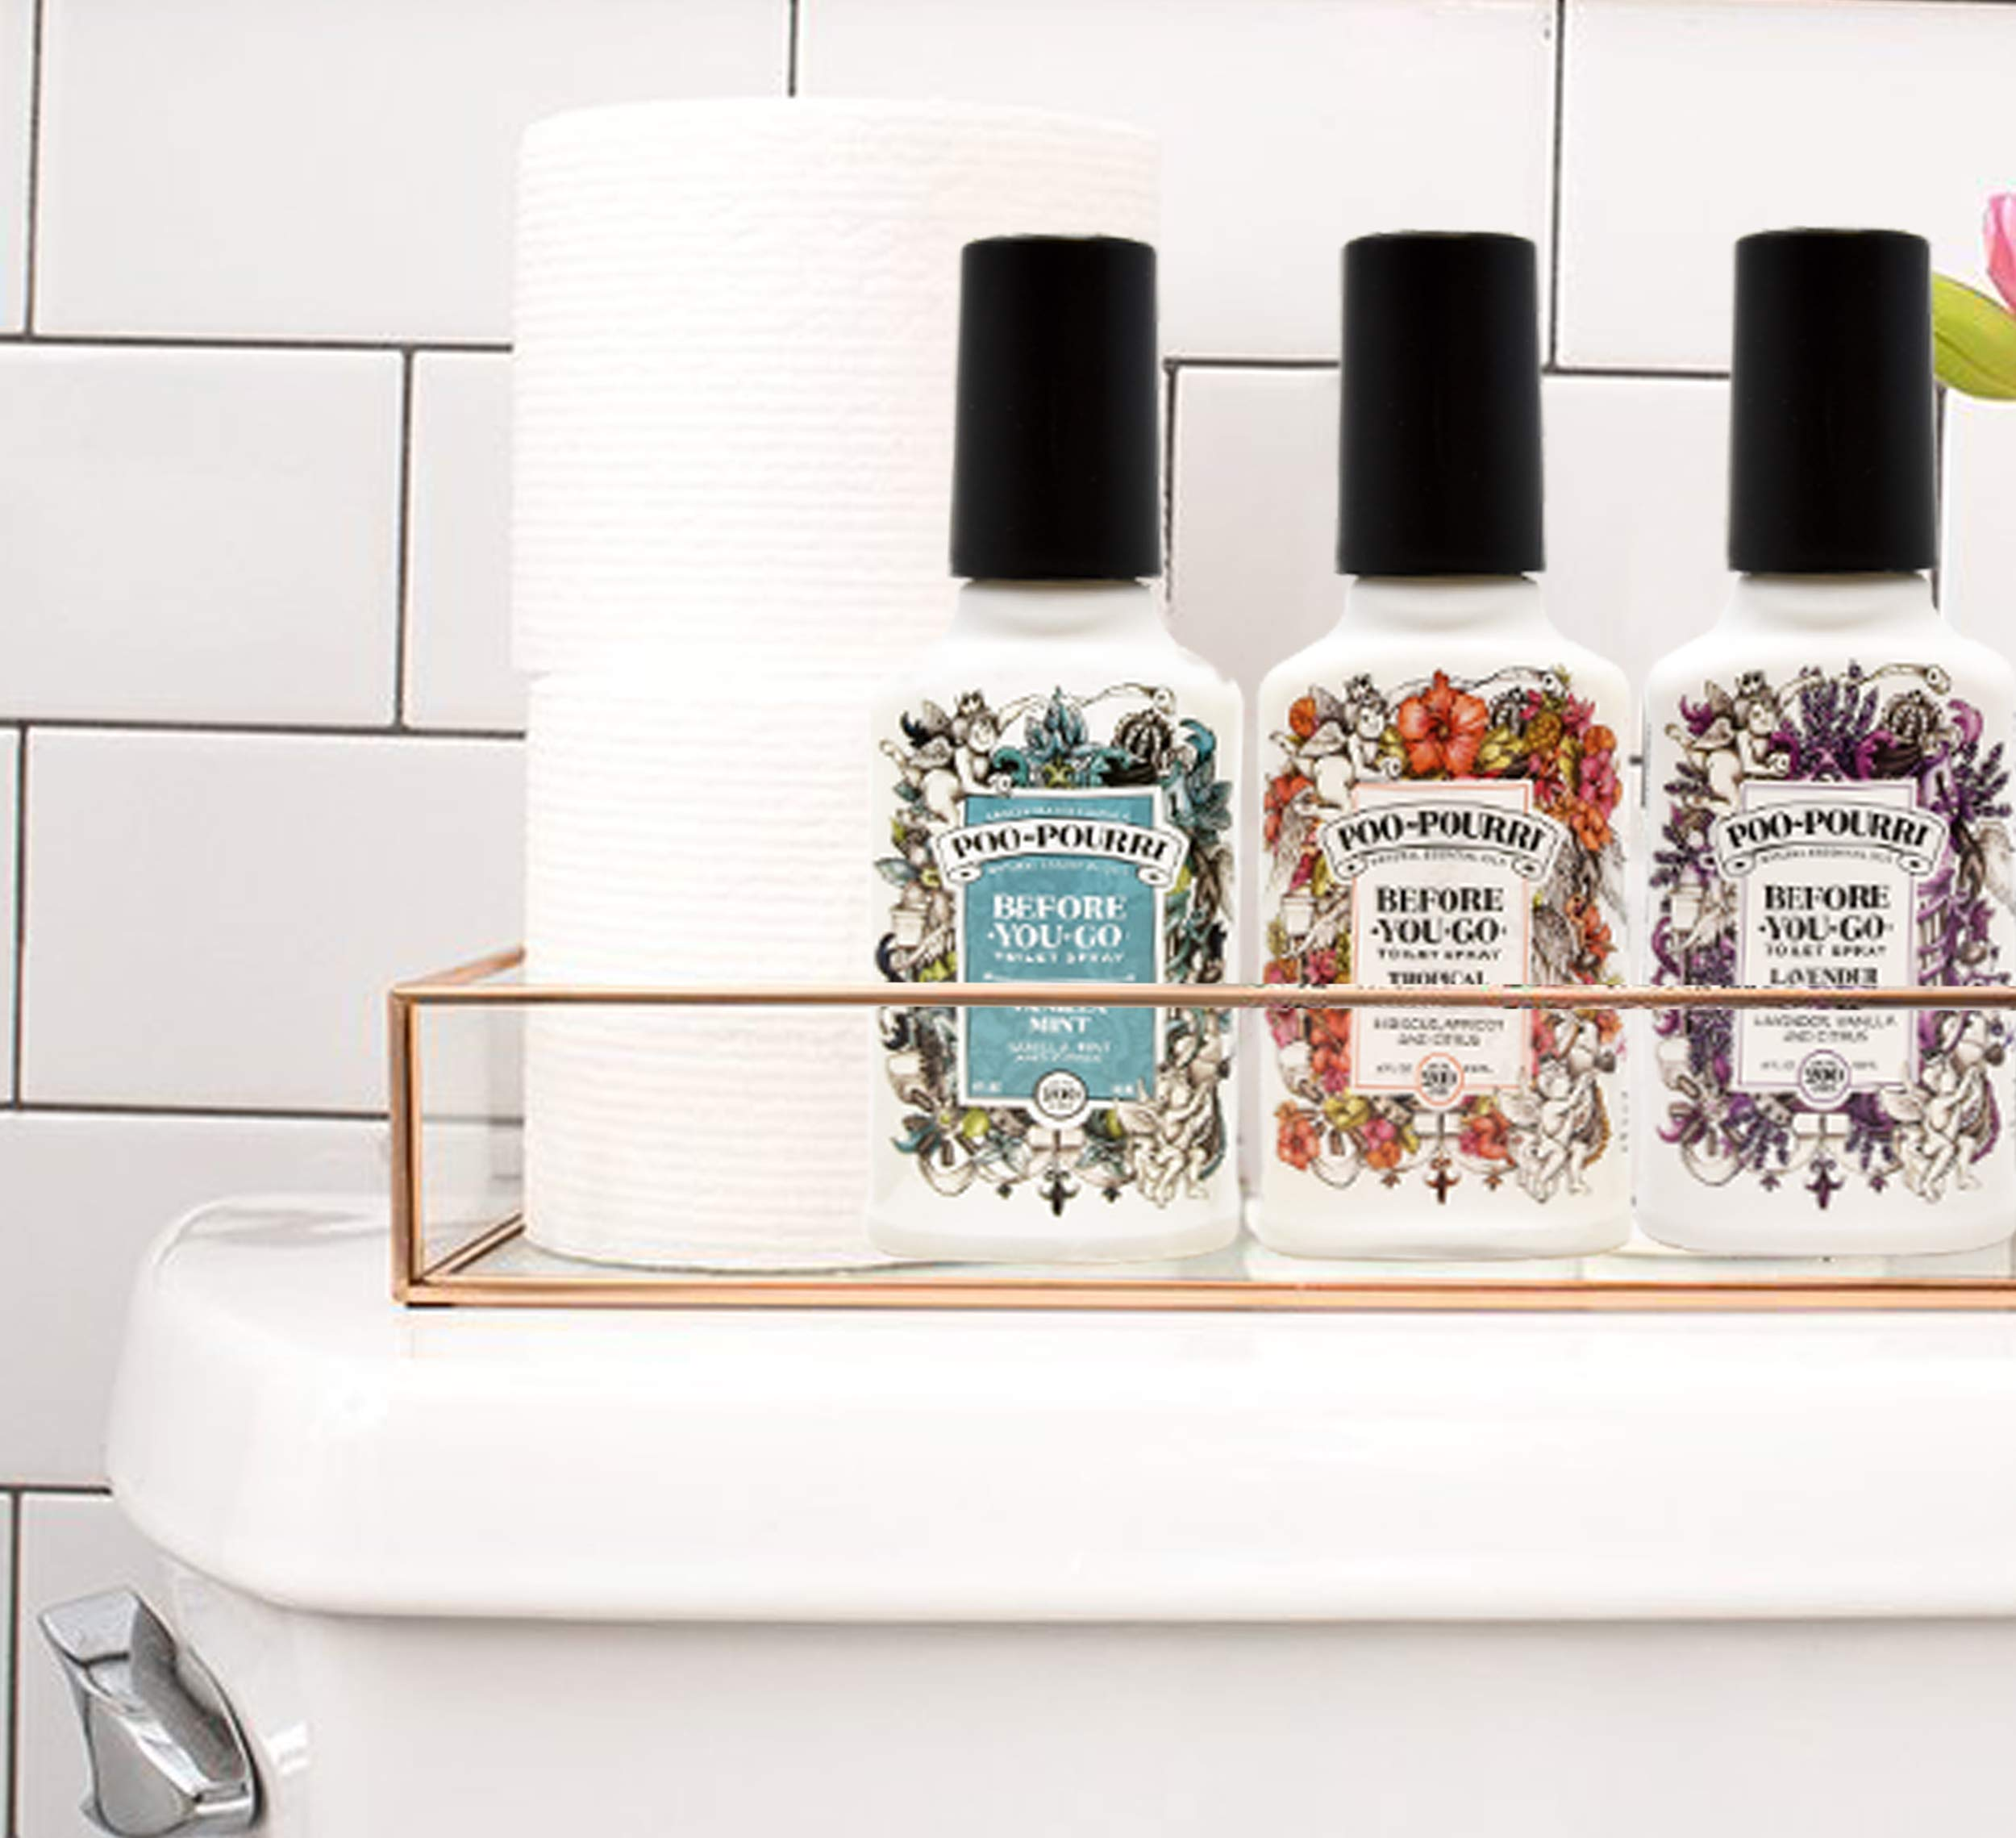 Poo-Pourri Lavender Vanilla, Tropical Hibiscus and Vanilla Mint 4-Ounce Set by Poo-Pourri (Image #3)